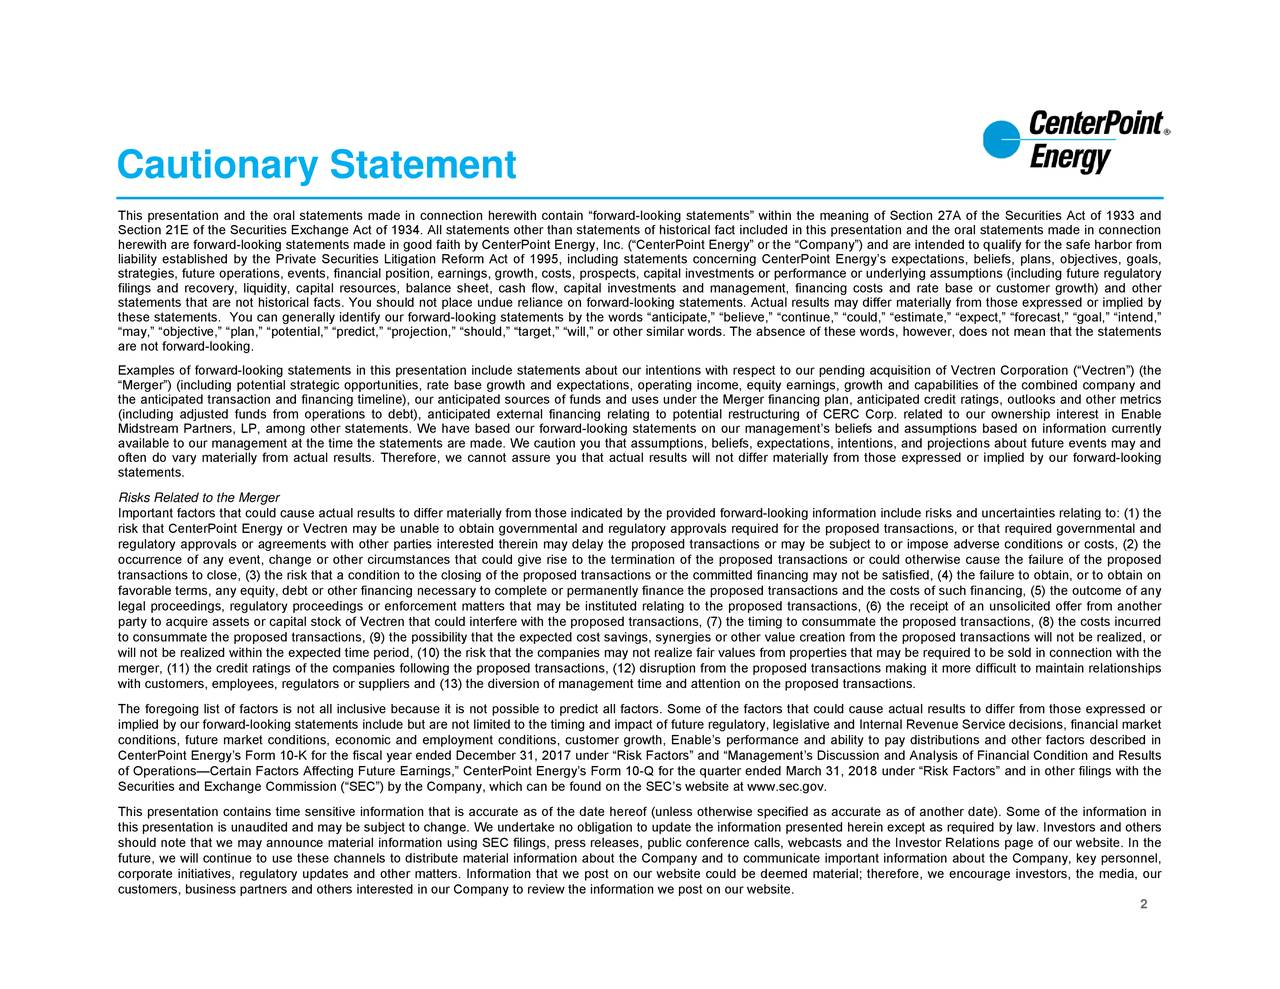 """nformation currently al Condition and Results Securities Act of 1933 and ondhe failure of the proposed and in other filings with the customer growth) and other t required governmental and by lahe Company, key personnel, statements made in connection fror ownership interest in Enabley anding, (5) the outcome of any te). Some of the information inn the our tren Corporation (""""Vectren"""") (the n unsansactions wito differ from those expressed ored in s, beliefs, plans, objectives, goals,d byks and other metricsilure to obtain, or to obtain on lities of the combined company and e Service decisions, financial market e,"""" """"expect,"""" """"forecast,"""" """"goal,"""" """"intend,"""" sks and uncertainties relating to: (1) the g assumptions (including future regulatory , however, does not mean that the statements le's performance and ability to pay distribution website at www.sec.gov. milar words. The absence of these words ted cost savings, synergies or other value creation from the proposed tra o predict all factors. Some of the factors that could cause actual results sion of management time and attention on the proposed transactions.ified as accurate as of another da hich can be found on the SEC's Company to review the information we post on our website. n,"""" """"should,"""" """"target,"""" """"will,"""" or other si nd employment conditions, customer growth, Enab ial,"""" """"predict,"""" """"projectio Cautionary StatementiEtetiterfetet""""tii""""tarh(aretciiaiacifftercerlorlntaieflocfctrgaitruiltsa,crtrrthstoi""""CeonfSrpeuThihisseruecenooeetmietsiasitie,aesndlrttyrsuodrraetctltrohtisrai-(ie"""